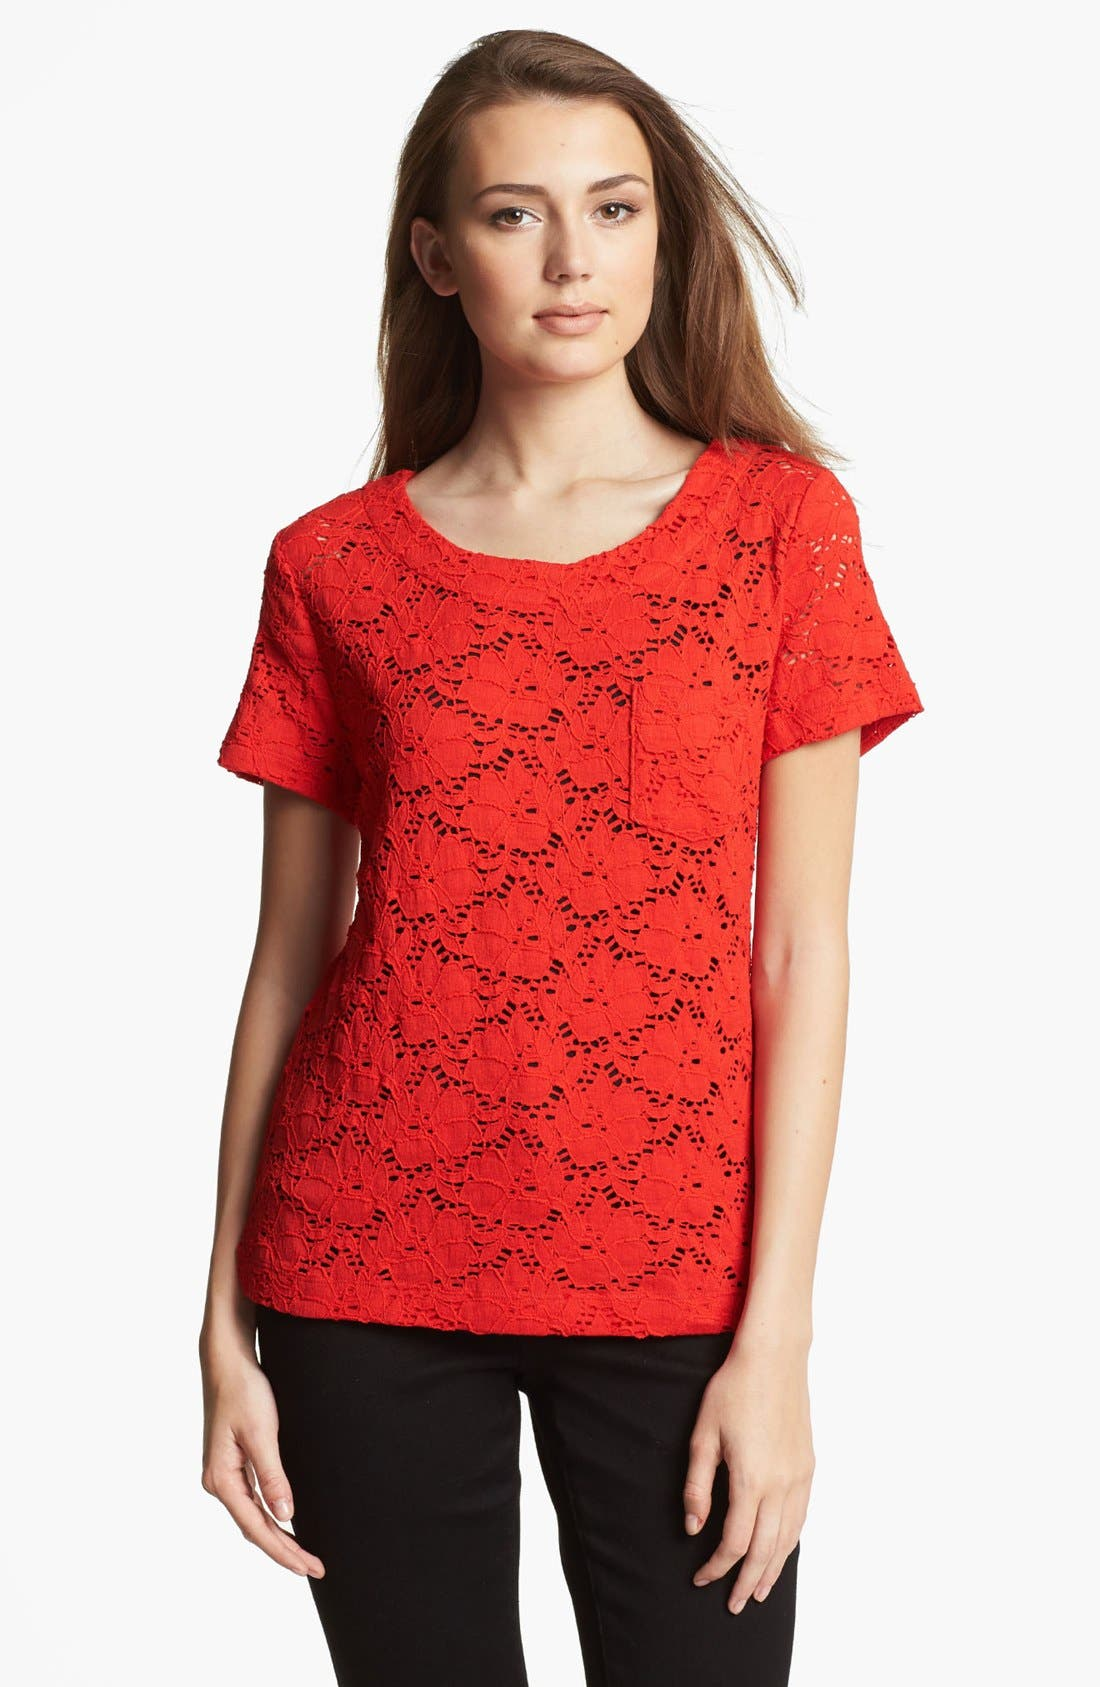 Alternate Image 1 Selected - Chaus 'Floral Garden' Lace Top